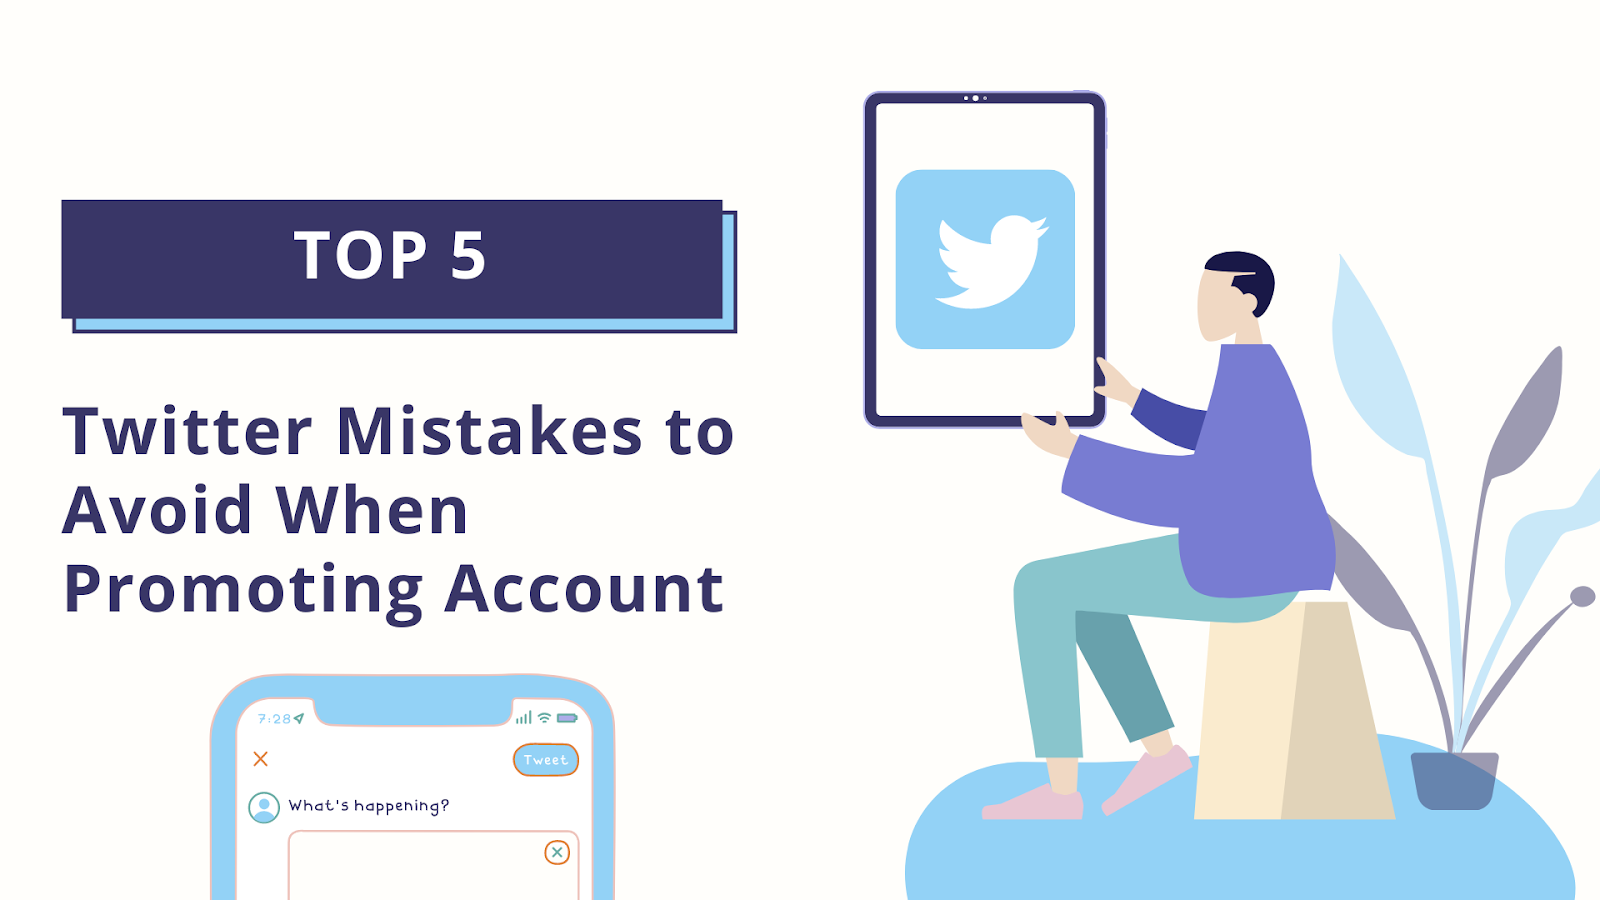 Top 5 Twitter Mistakes to Avoid When Promoting Account